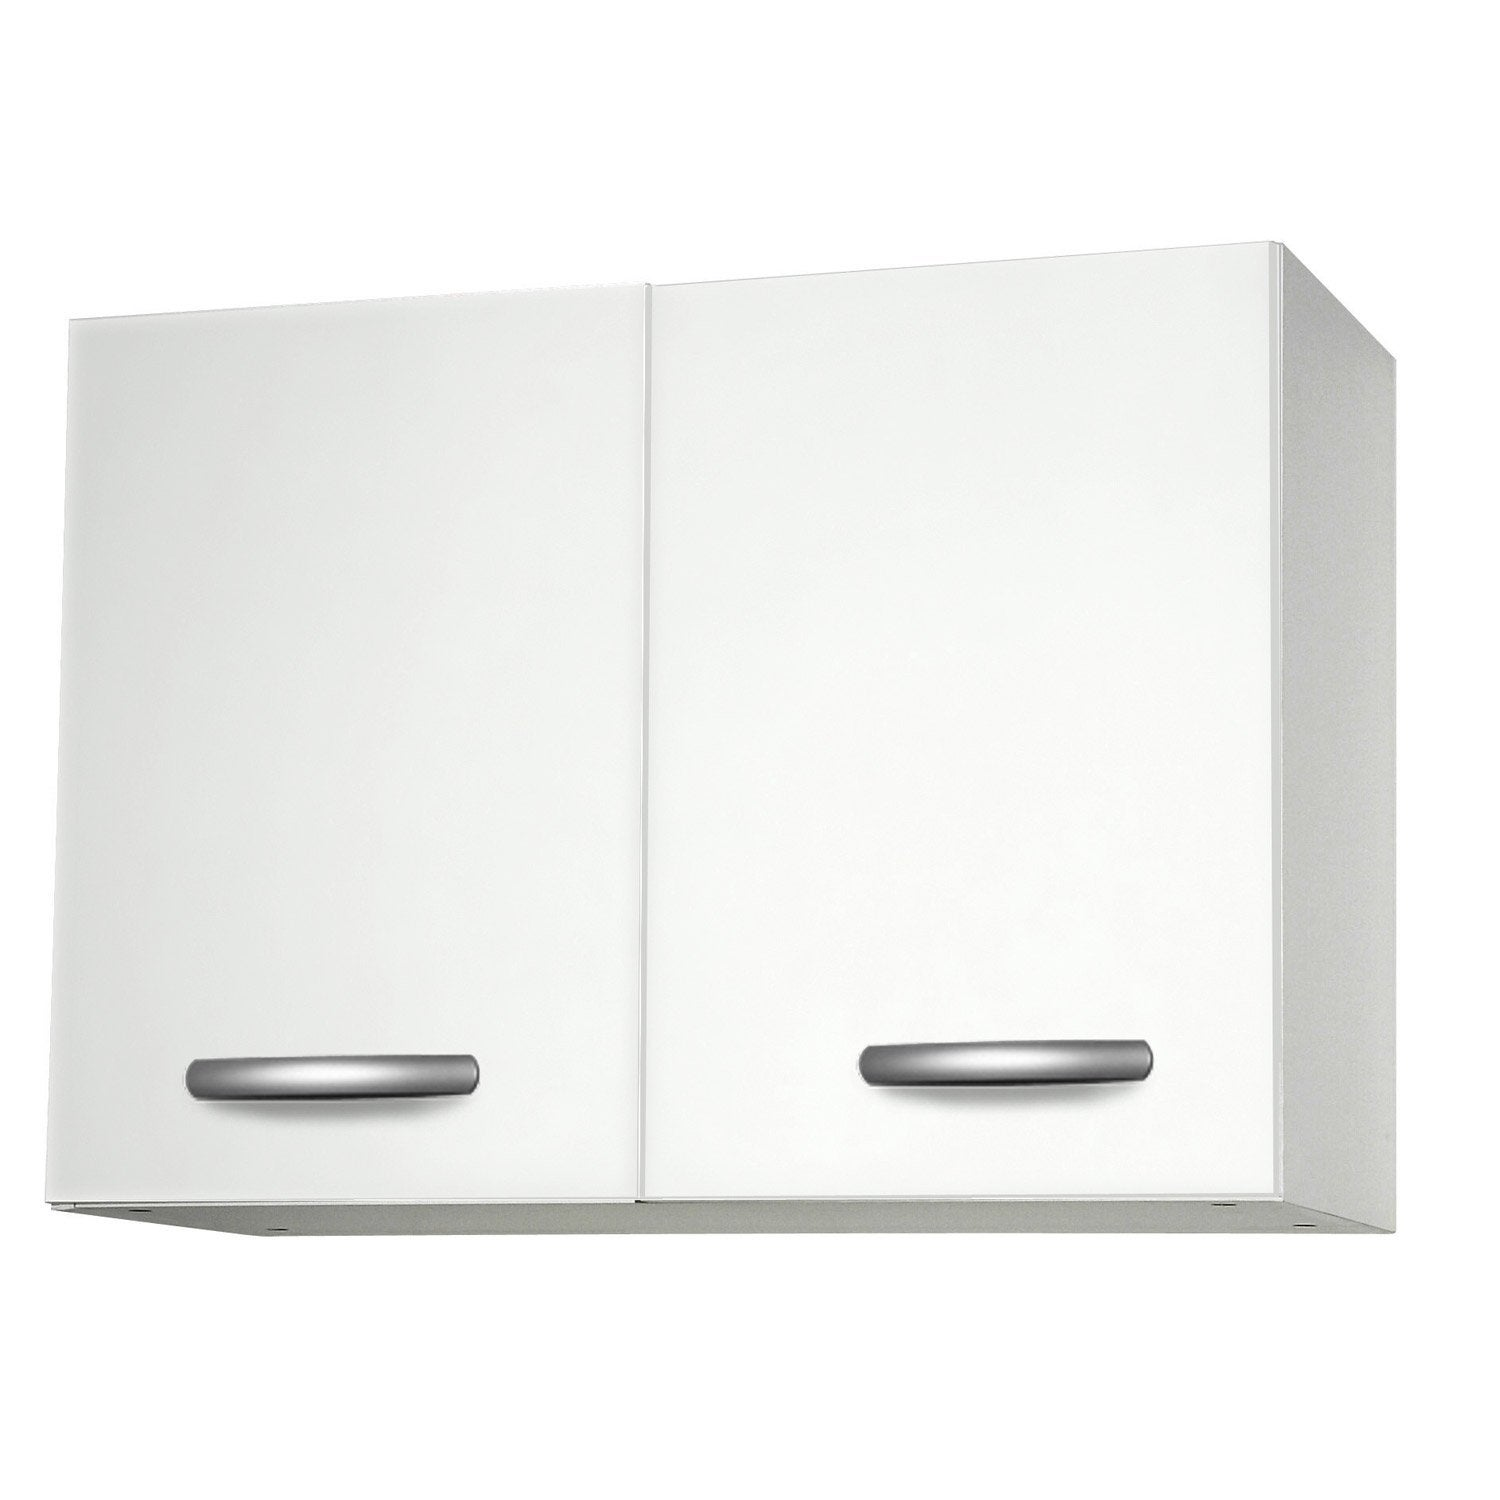 meuble de cuisine haut 2 portes blanc l80x p35 On portes elements cuisine leroy merlin